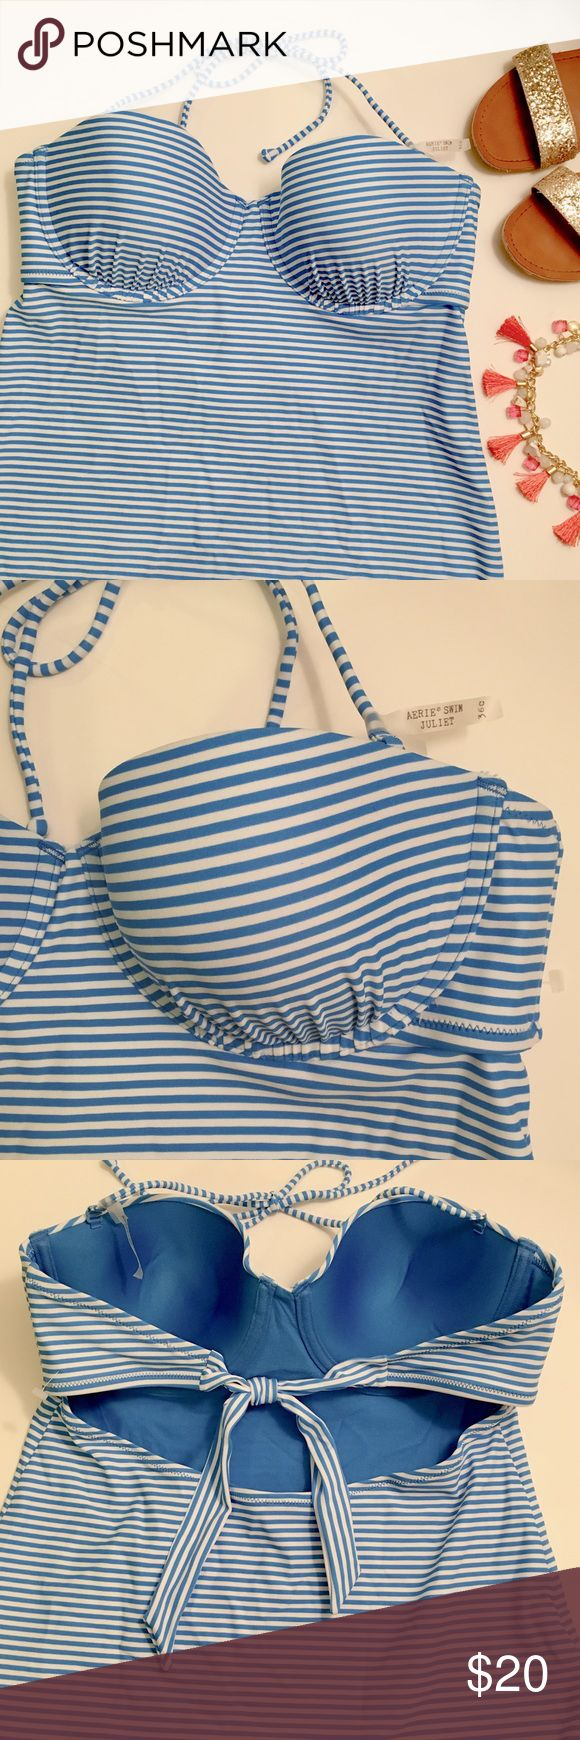 Aerie Blue and White Striped Tankini Top New! Never worn! Aerie Swim Juliet tankini top. Size 36C. Top fits like a large/x-large. String ties are removable. aerie Swim